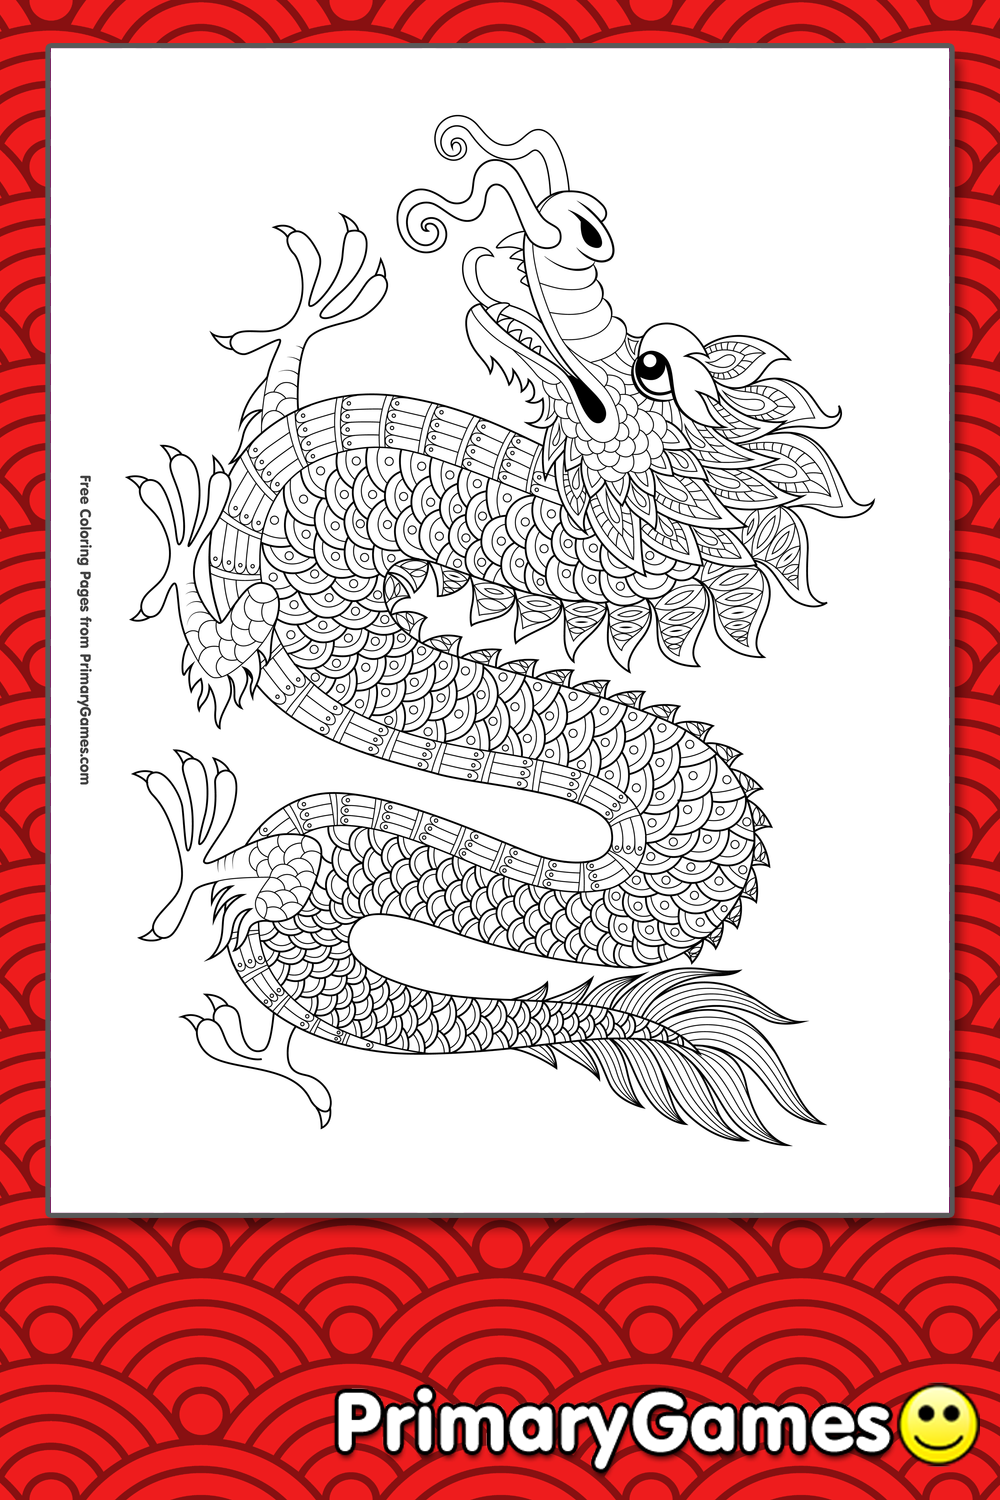 Chinese Dragon Coloring Page Free Printable Pdf From Primarygames